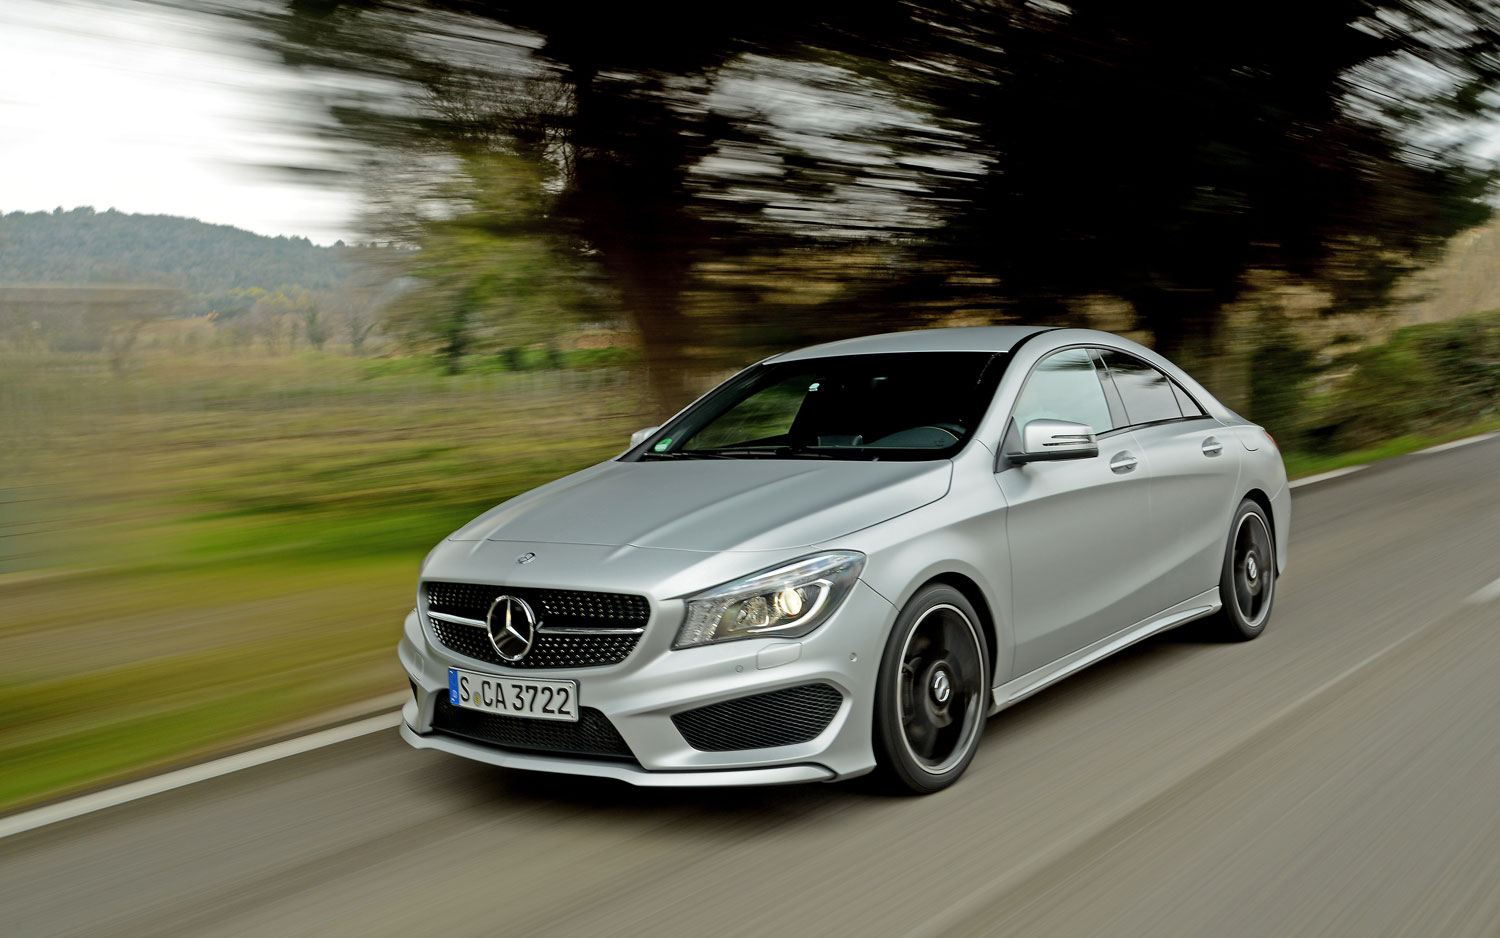 2014 Mercedes Benz CLA250 Front Left View1